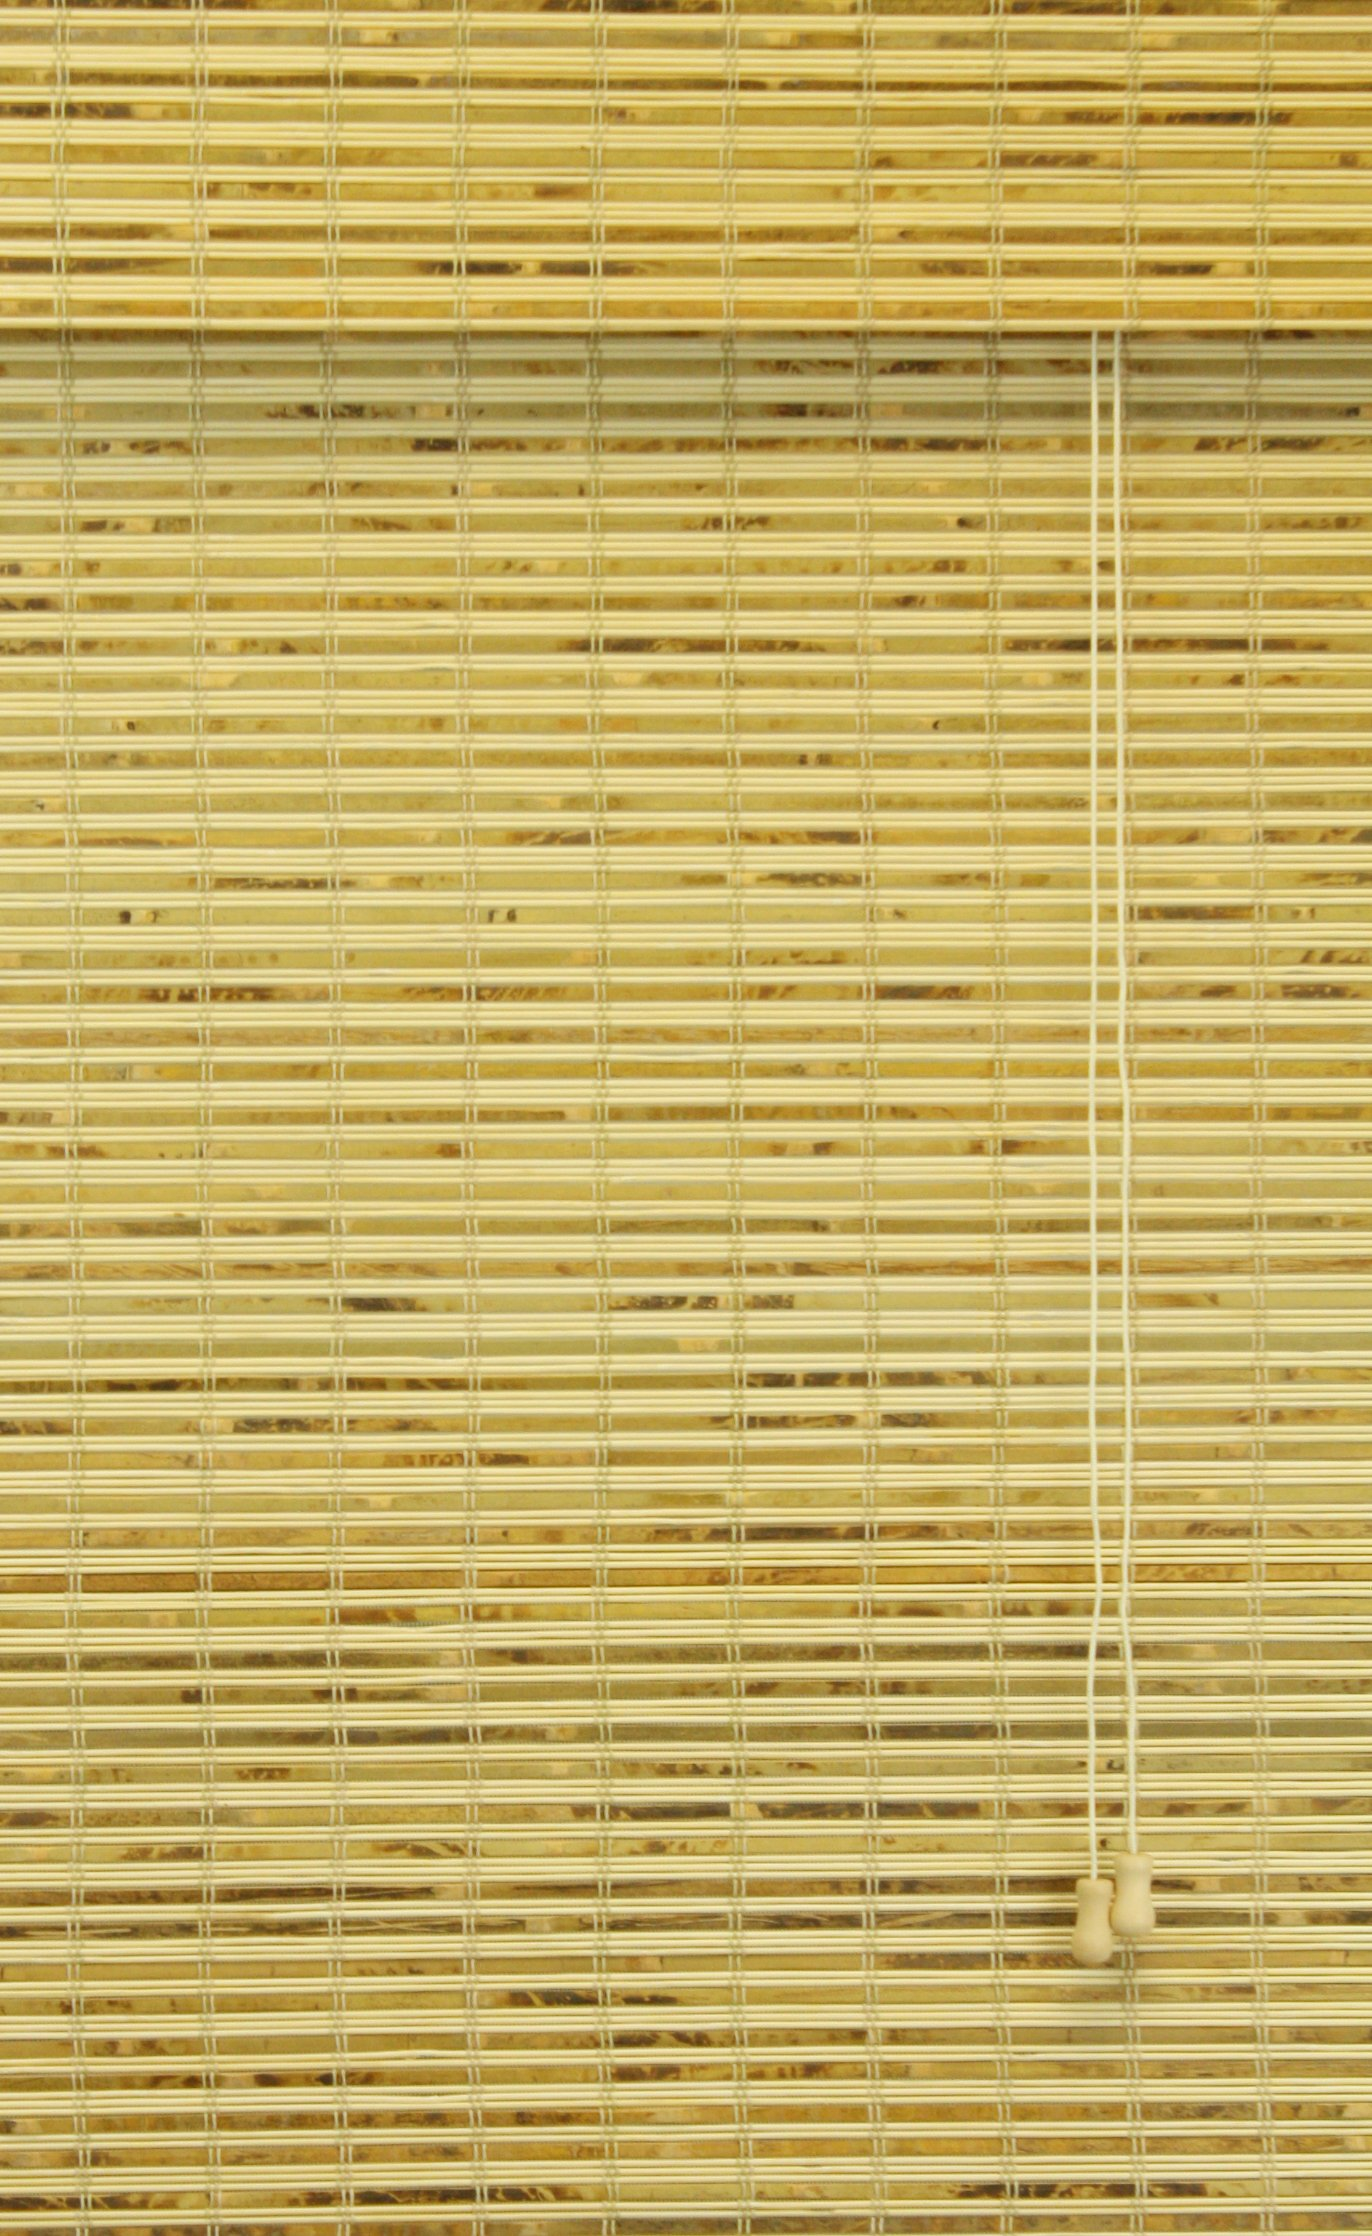 Calyx Interiors Bamboo Roman Shade, 74-Inch Width by 74-Inch Height, Petite Rustic